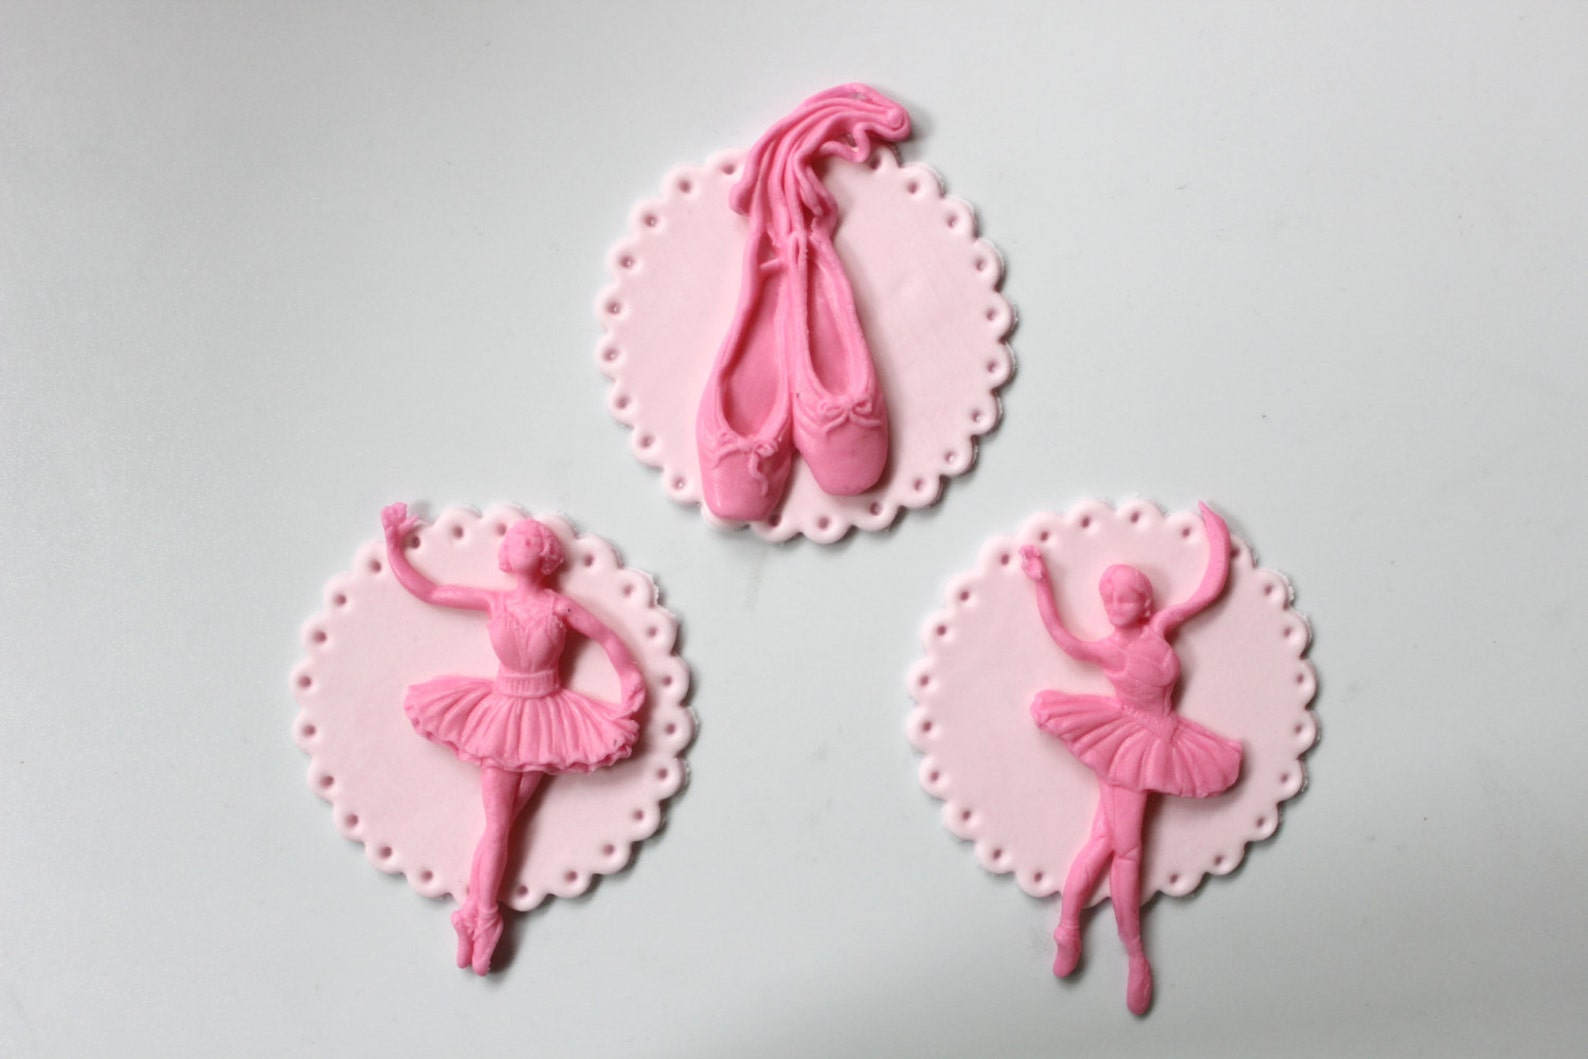 ballerina tutu cupcake toppers 12pcs ballet edible fondant shoes cookie decorations inspired dancer classic birthday theme party